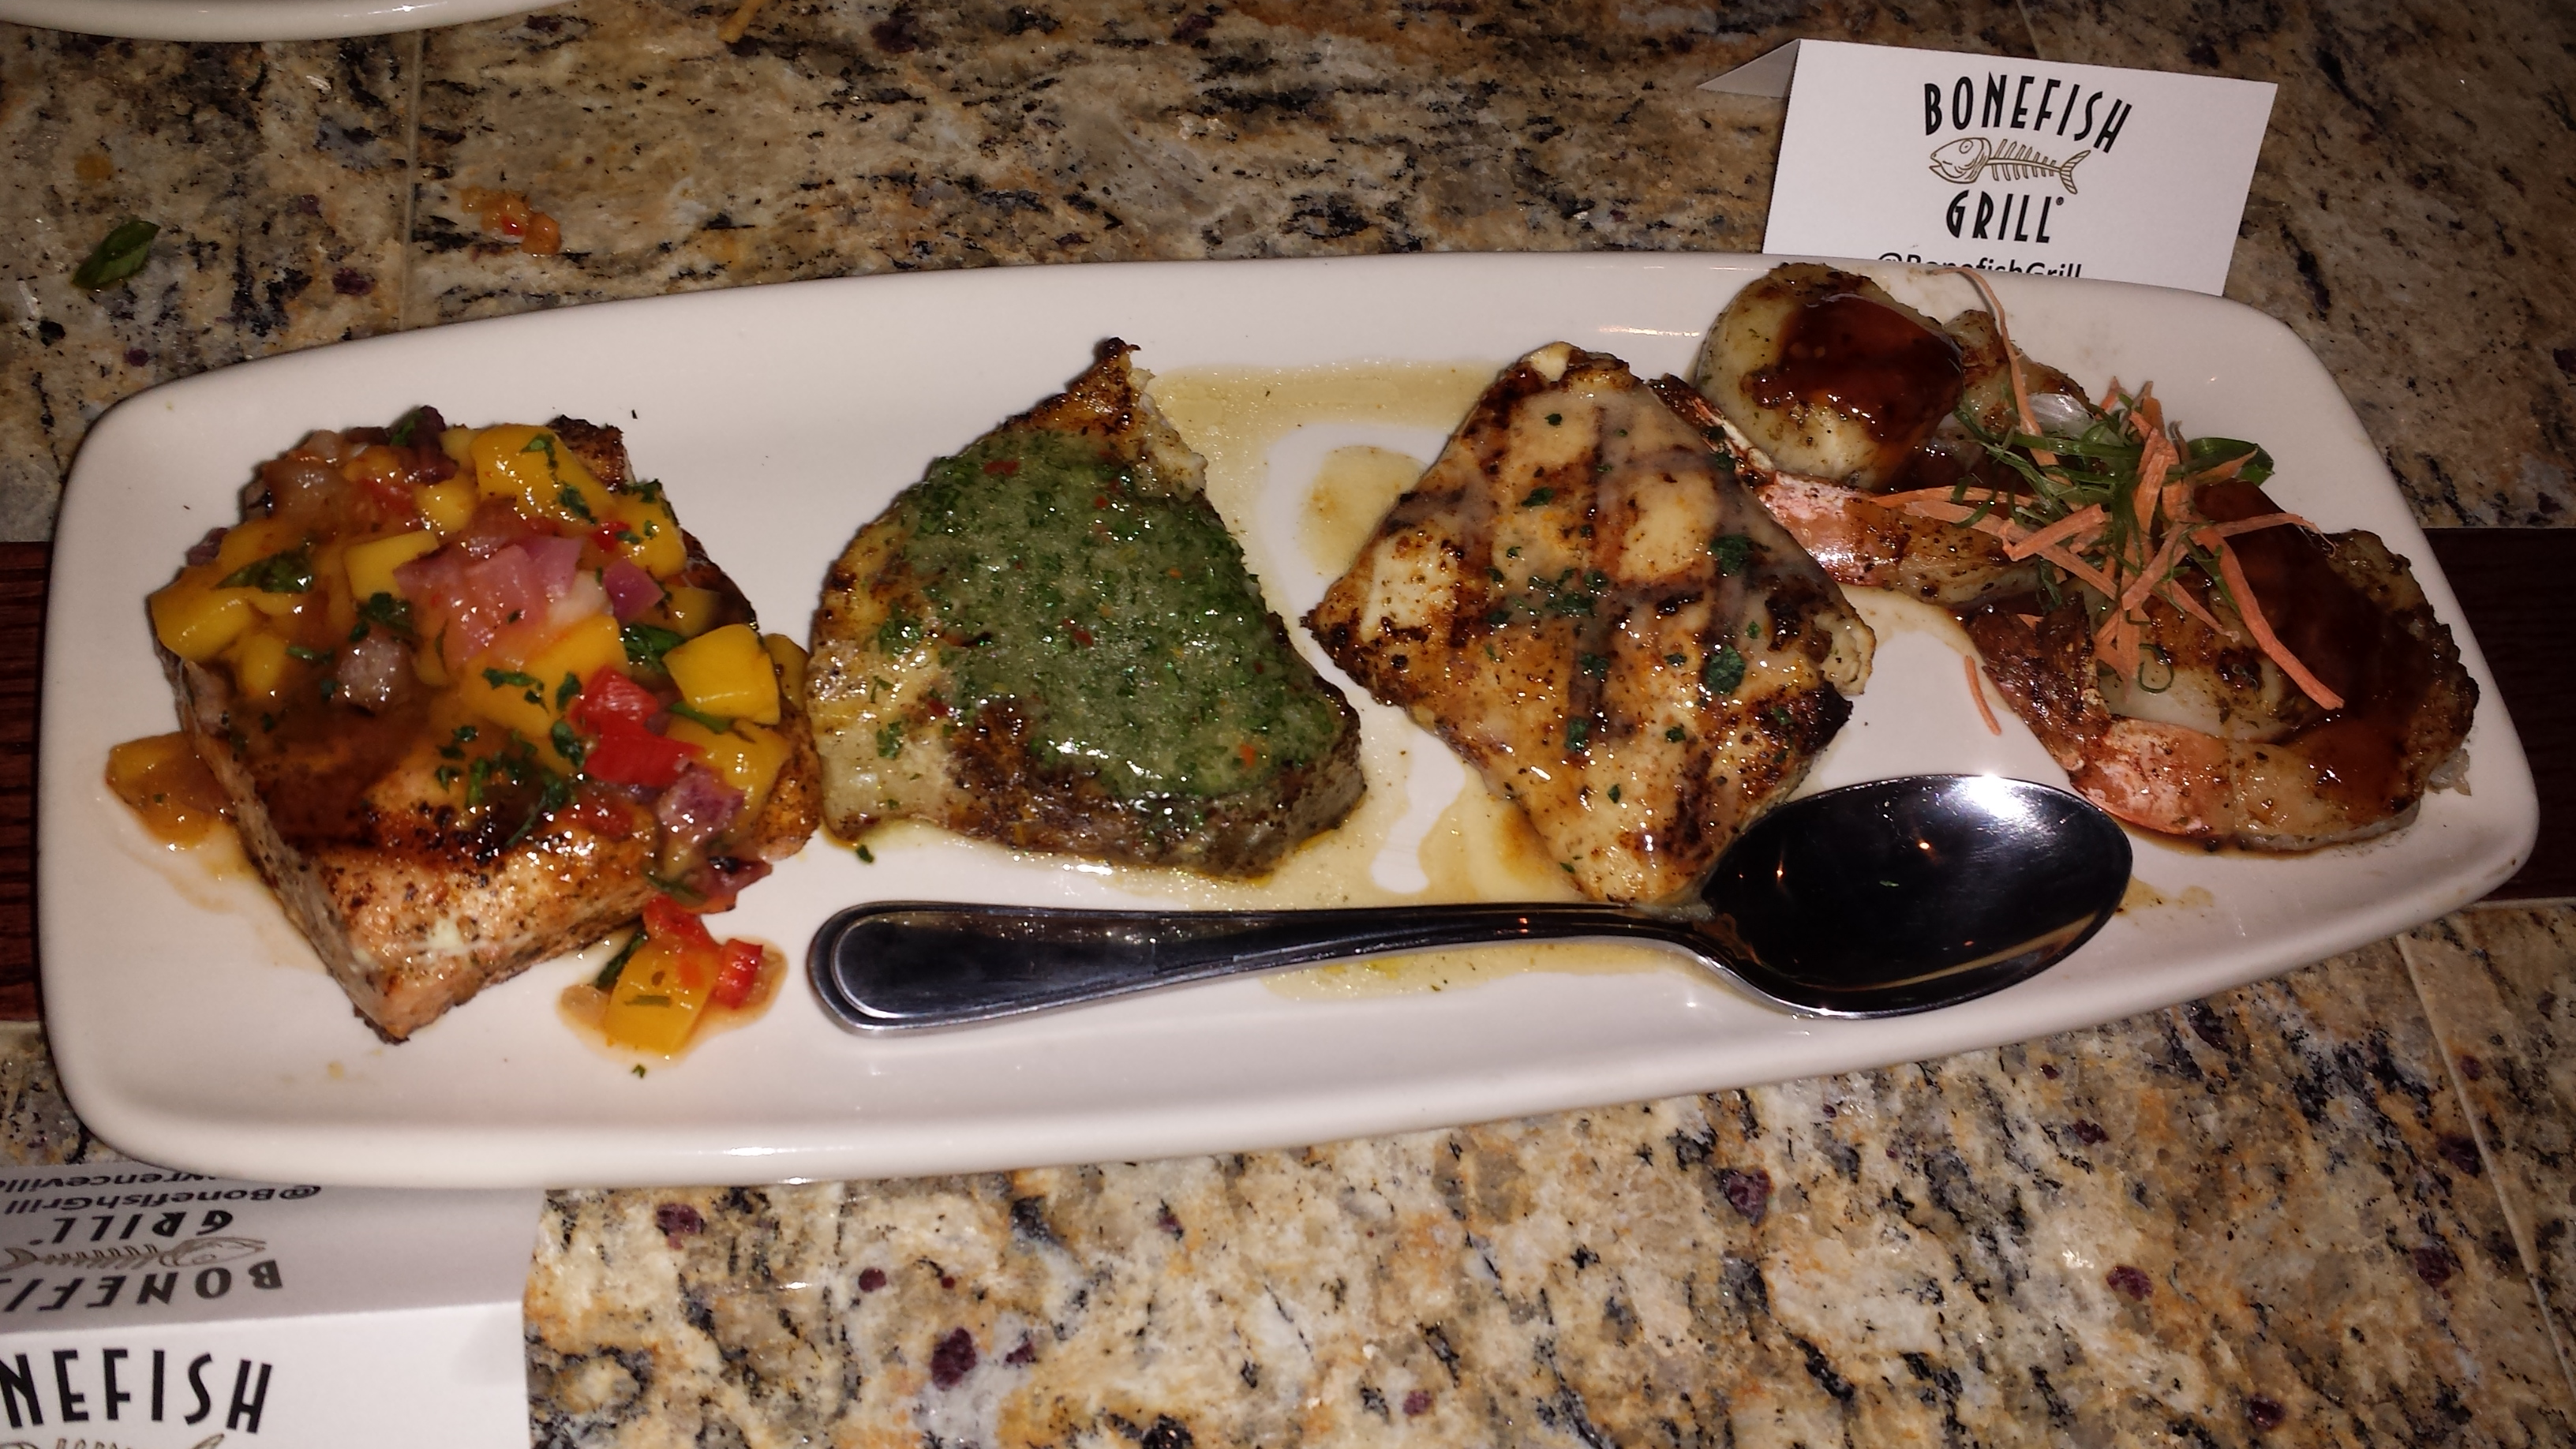 Bonefish grill fish ahoy nj spice for Bone fish and grill